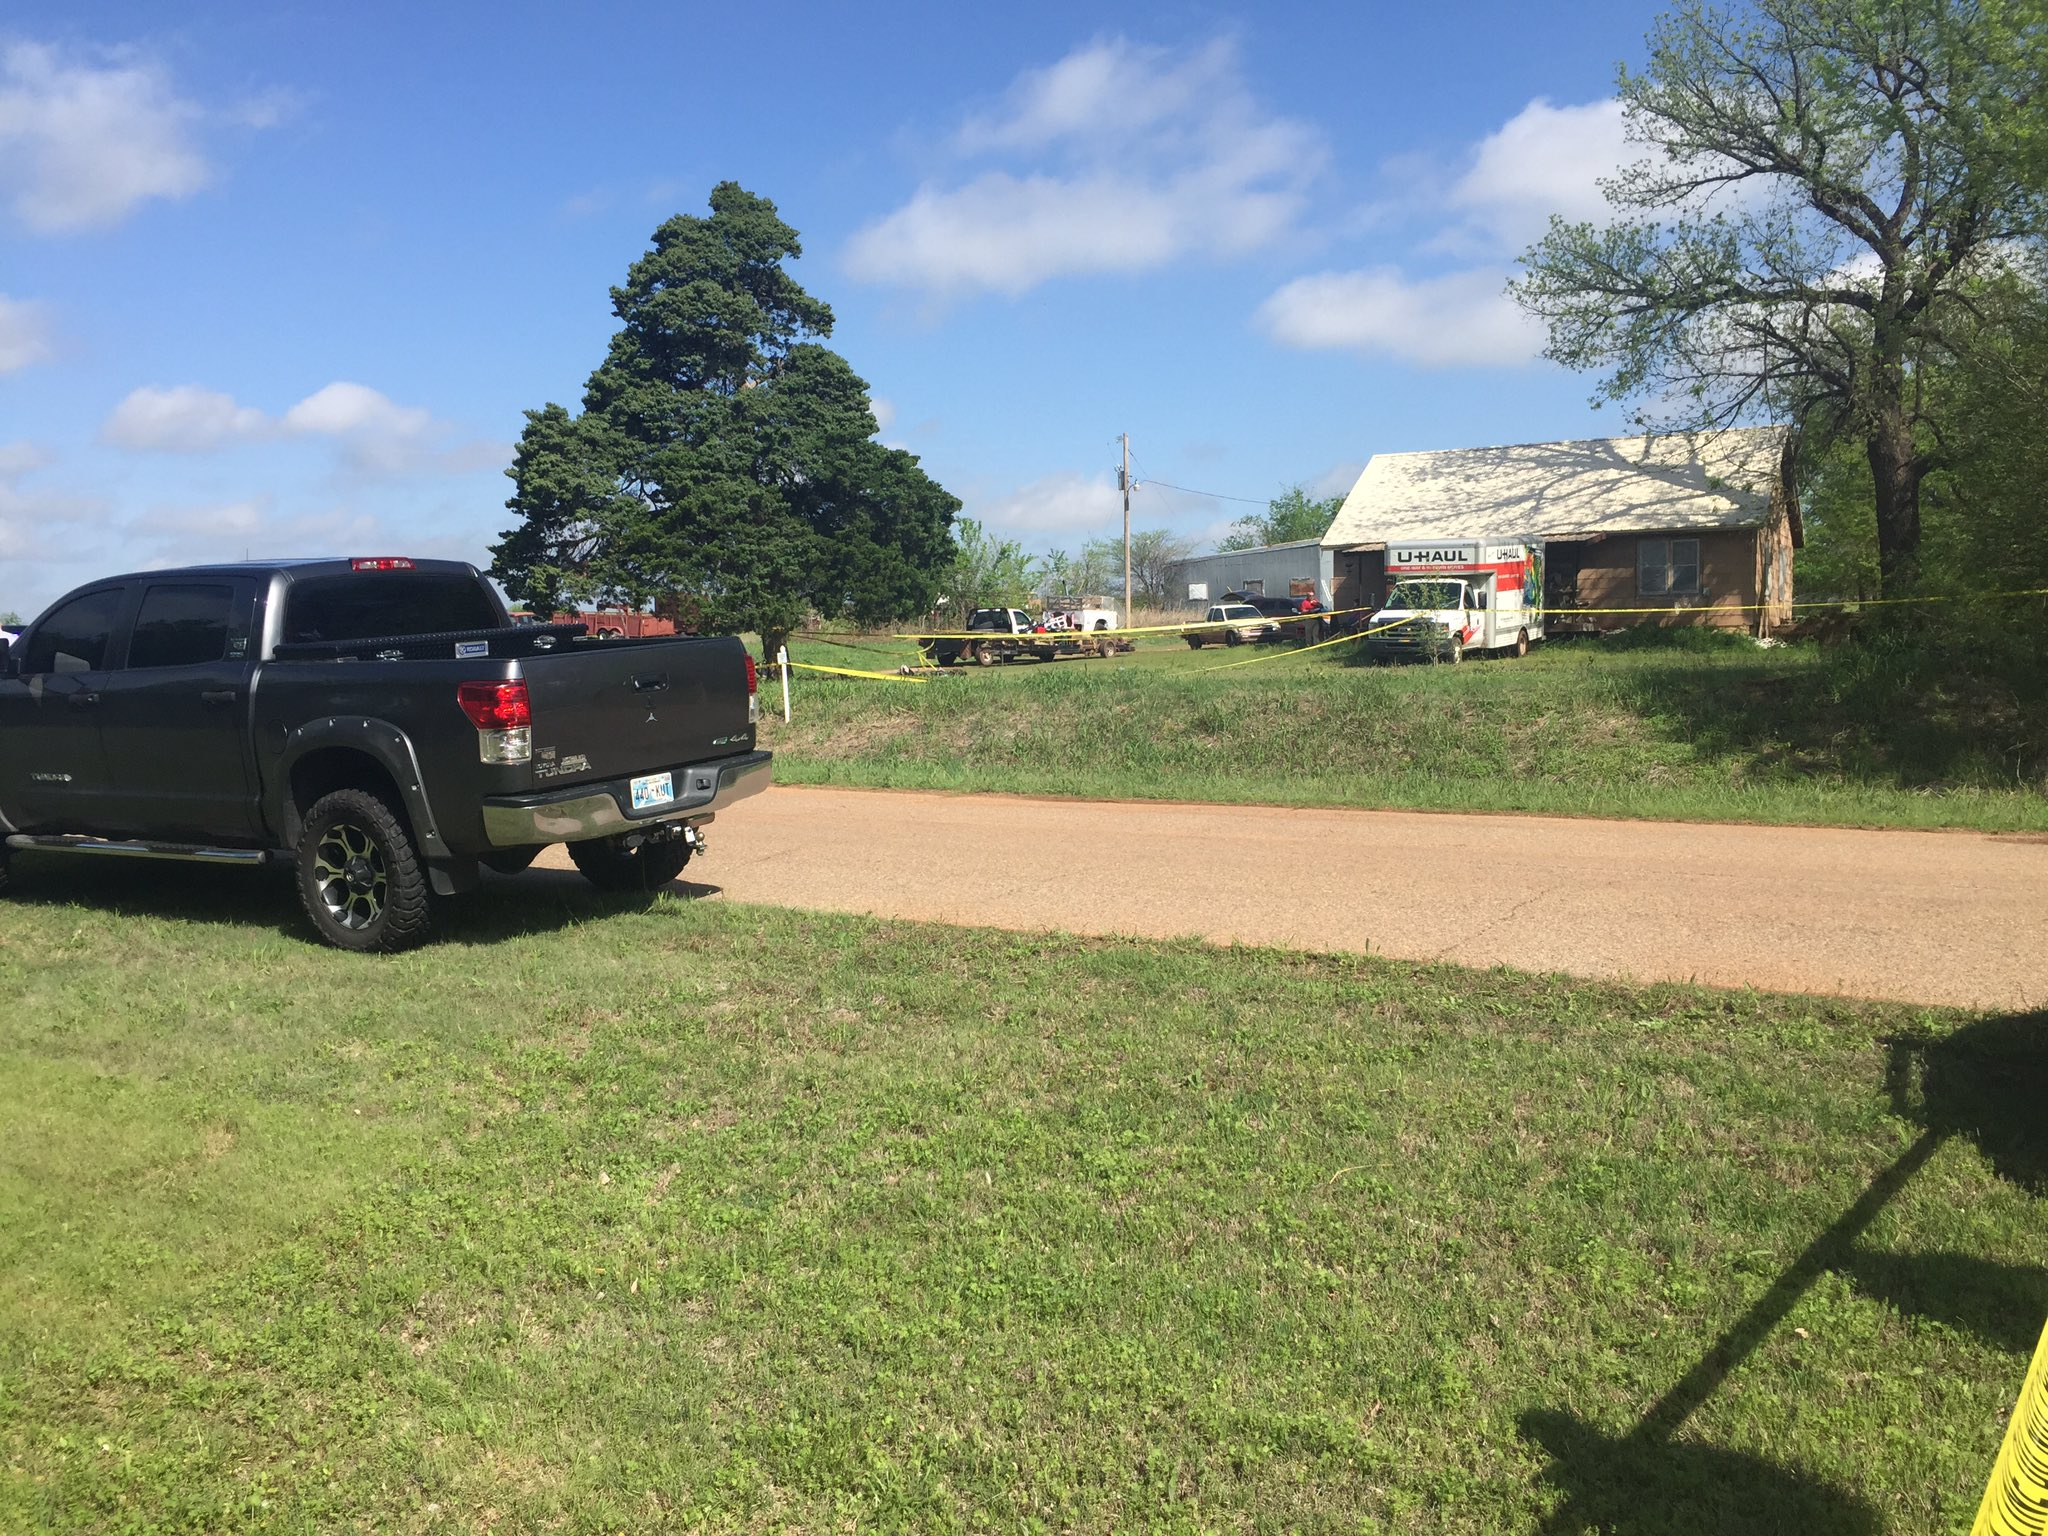 Authorities investigate the scene near Mulhall where a Logan County Sheriff's deputy was shot. (KOKH/Julie Calhoun)